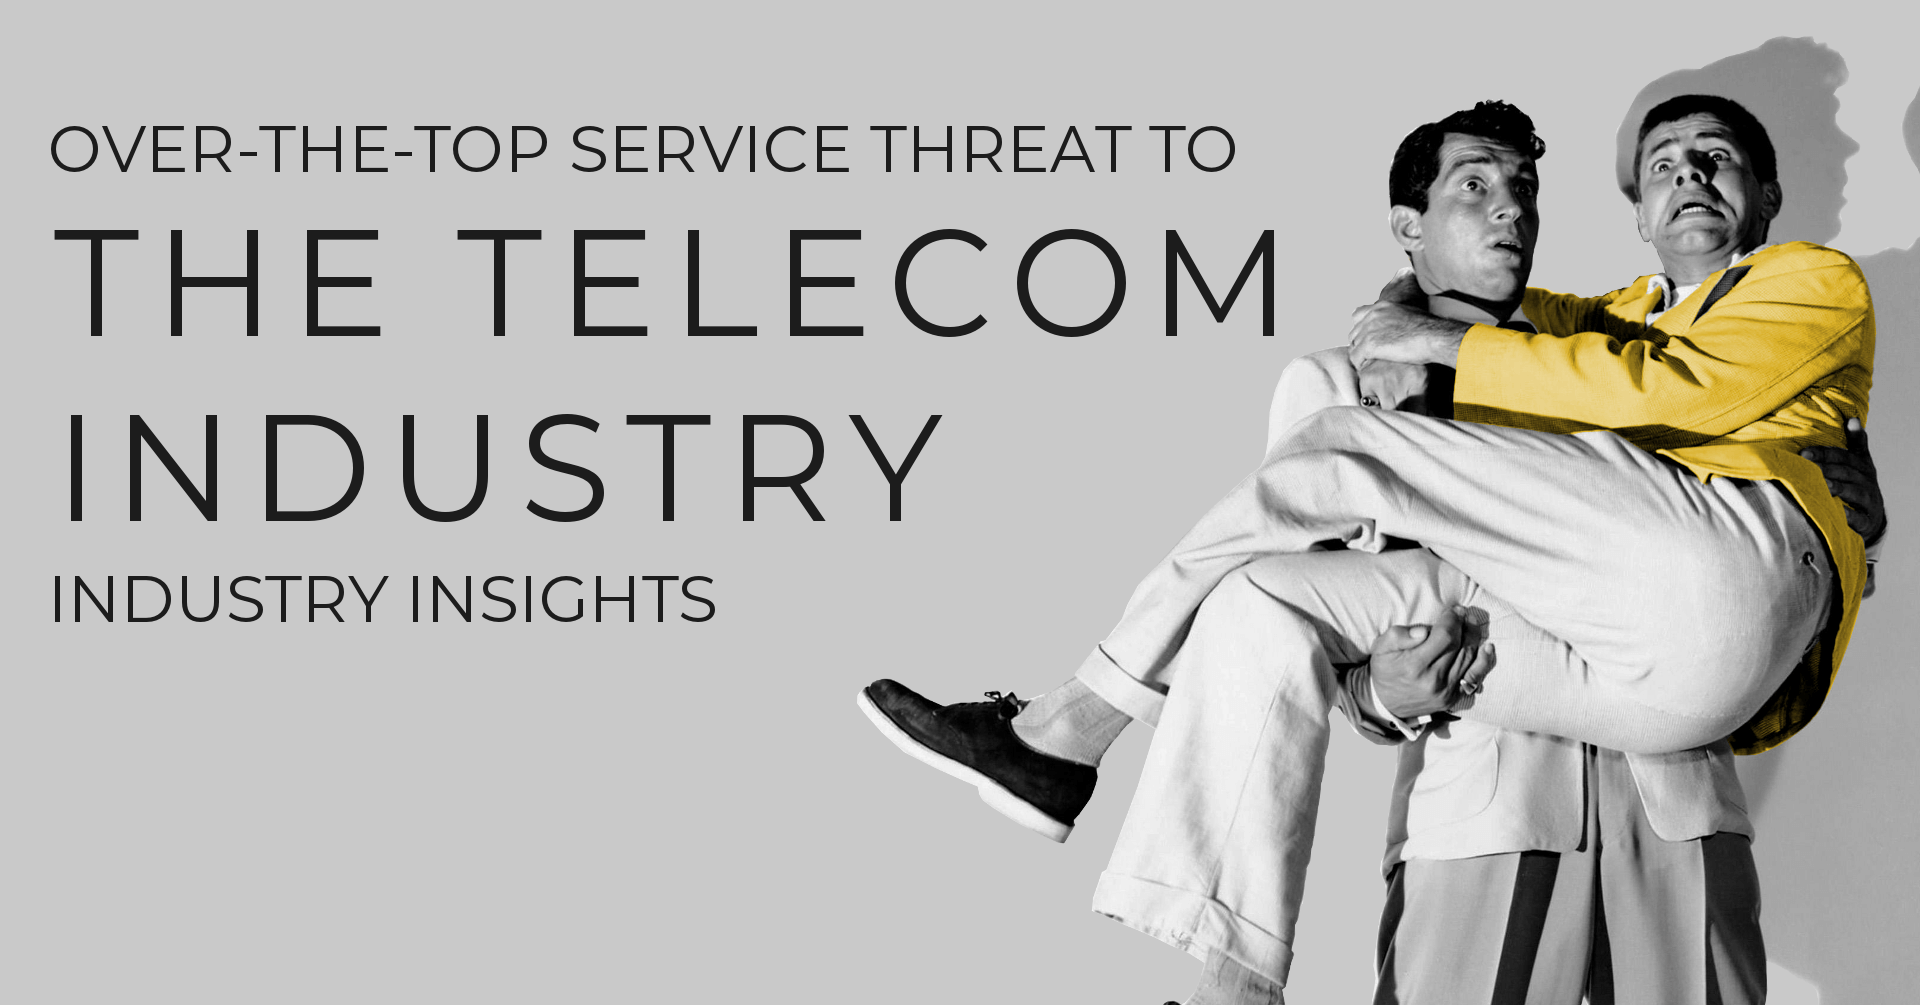 The Over-The-Top Service Threat to the Telecommunications Industry